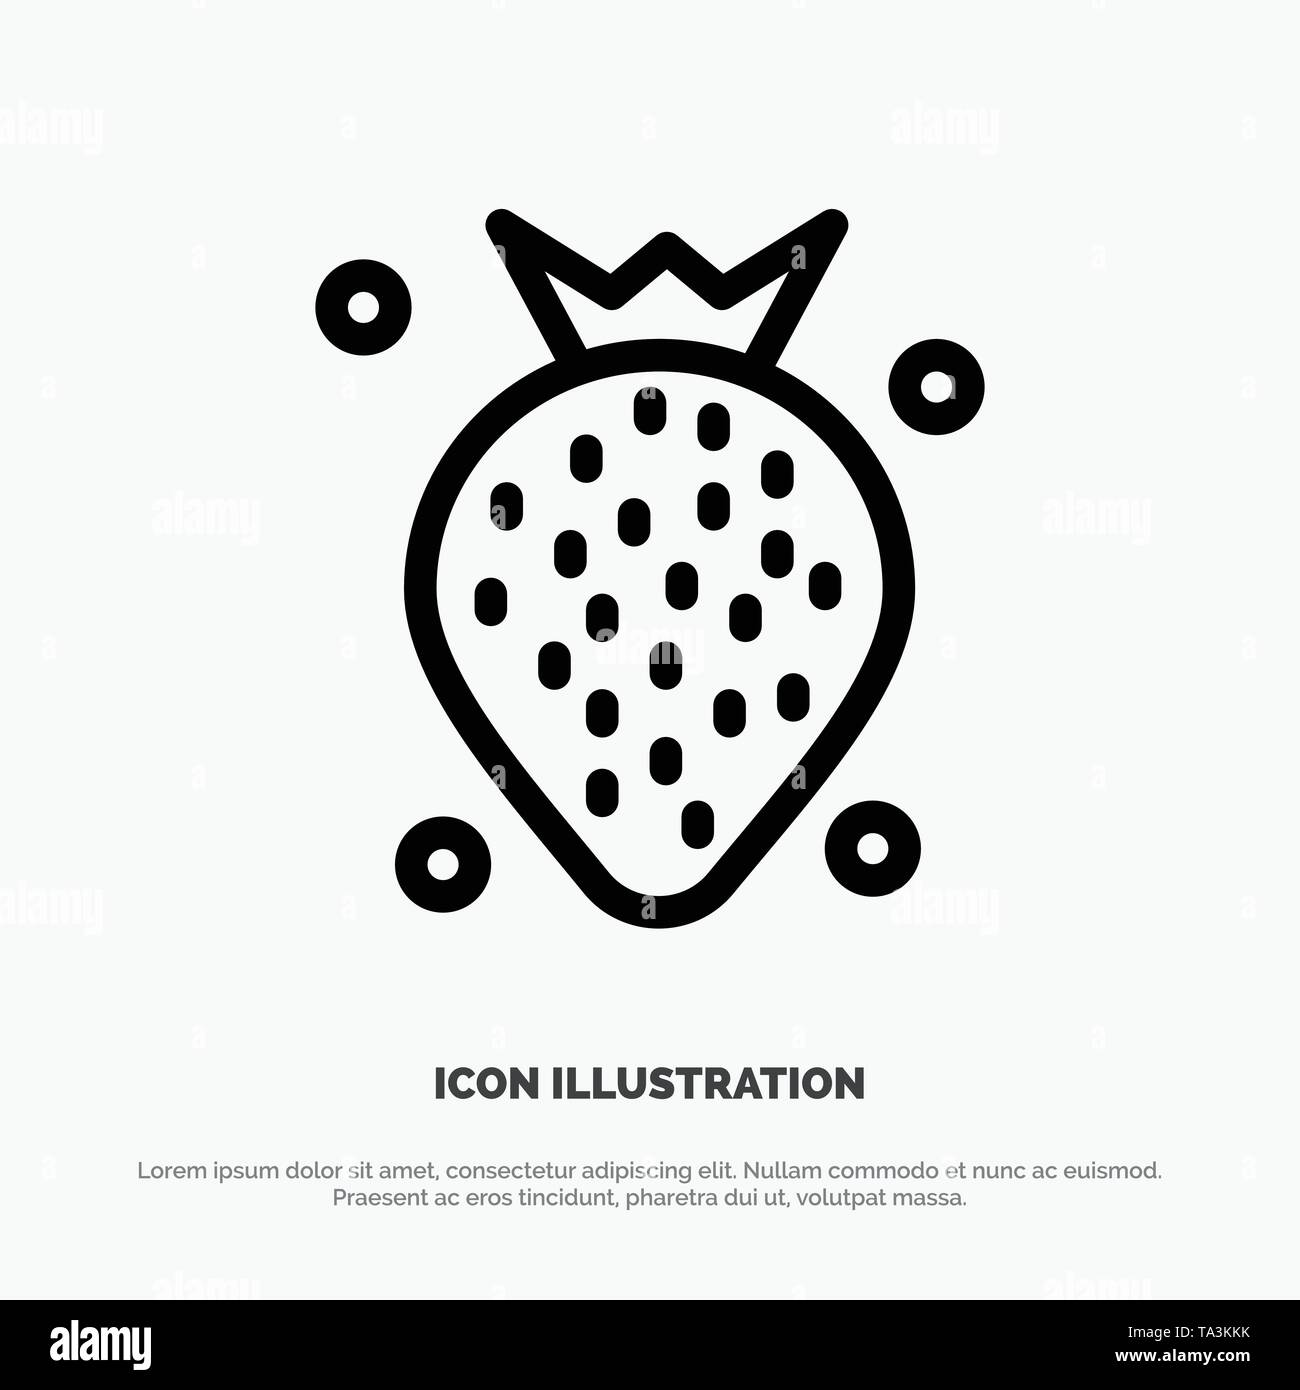 Strawberry, Food, Fruit, Berry Line Icon Vector - Stock Image